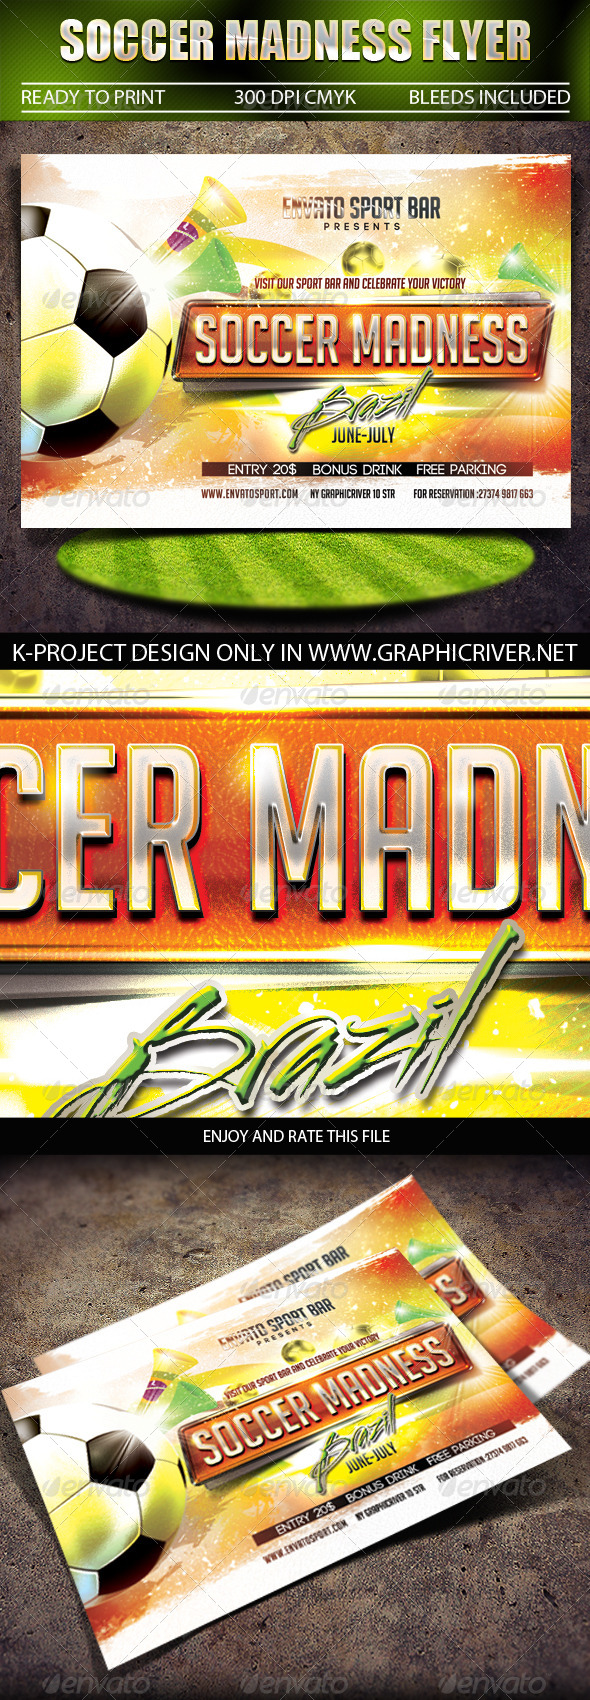 GraphicRiver Soccer Madness Flyer 7575304